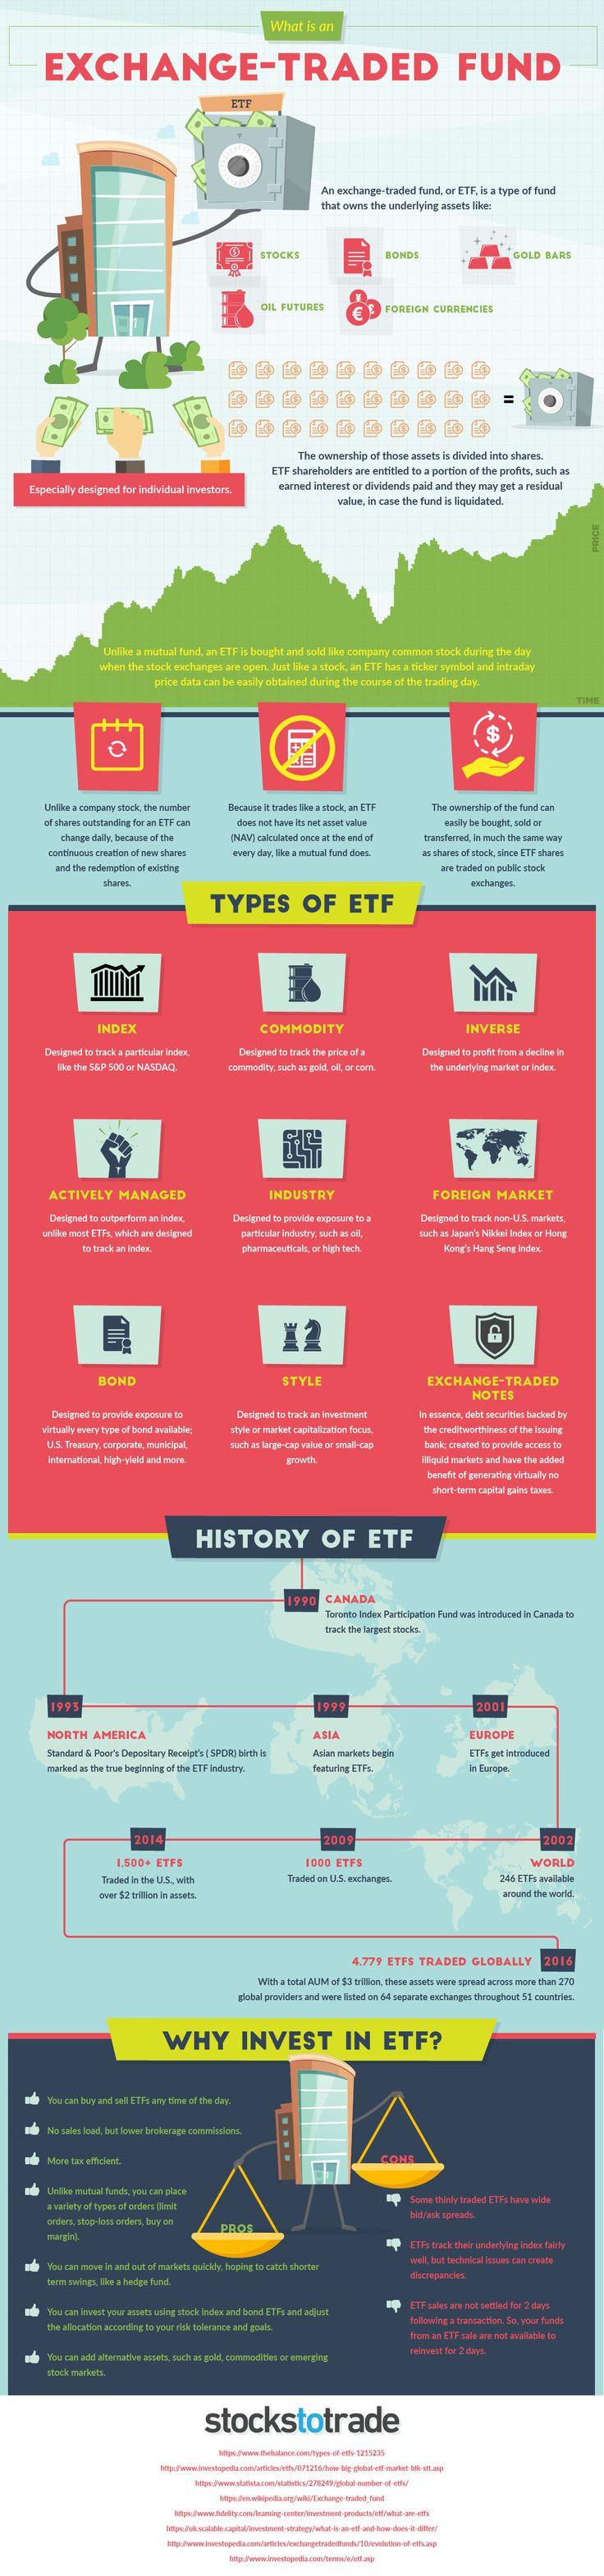 What is an ETF? -  What is an ETF?  In 1989 the idea for the exchange-traded fund (ETF) was born.  Initially marketed to investors as Index Participation Shares this innovative new product was meant to be a proxy for the S&P 500 that also traded on an exchange like a stock. After being launched this early ETF prototype was immediately targeted by lawyers of the Chicago Mercantile Exchange (CME) for illegally behaving like a futures contract. A lawsuit ensued and a federal judge in Chicago…